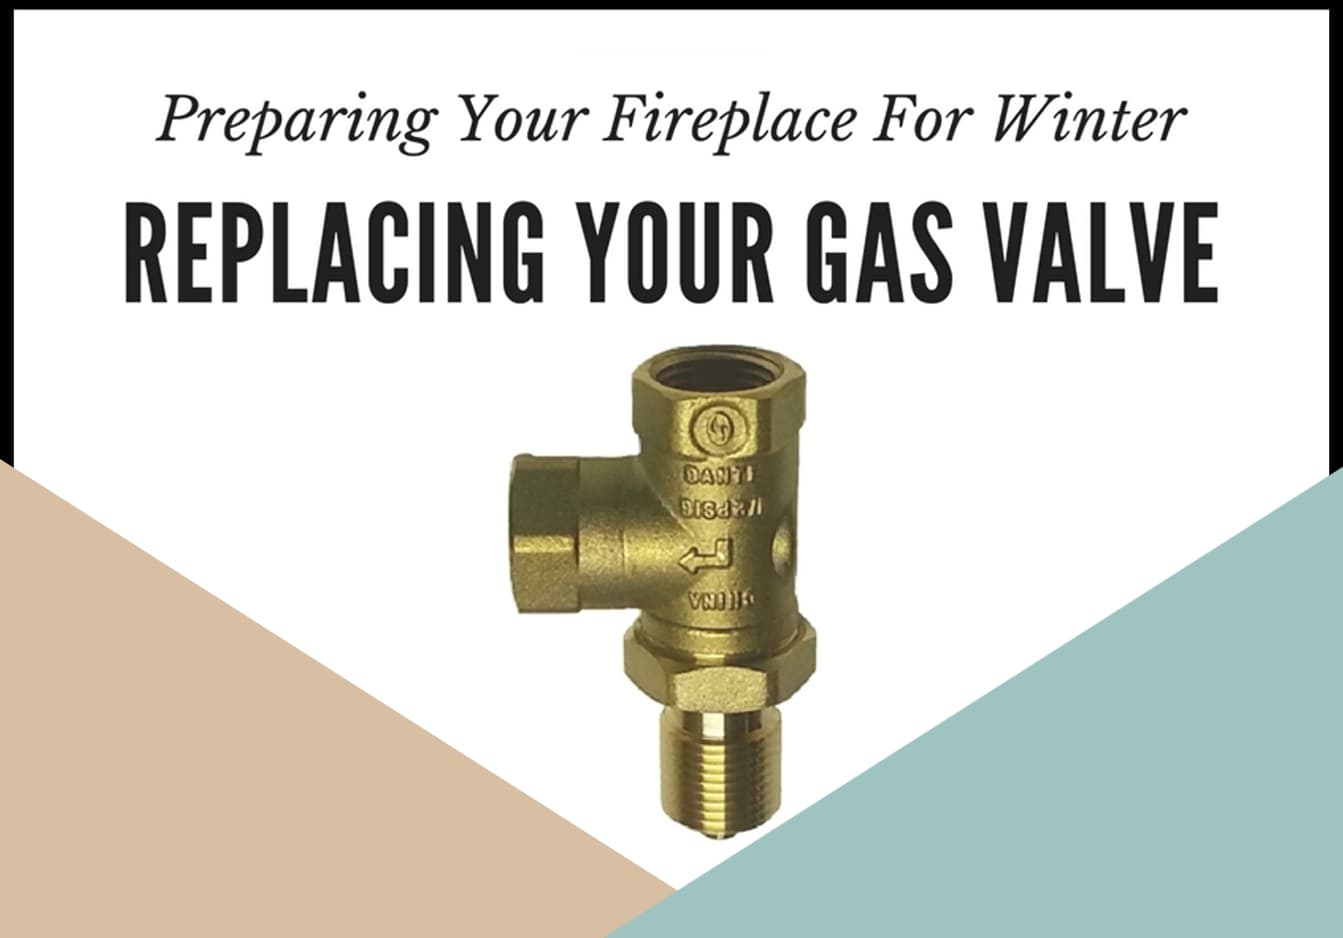 Replacing Your Gas Valve For Winter